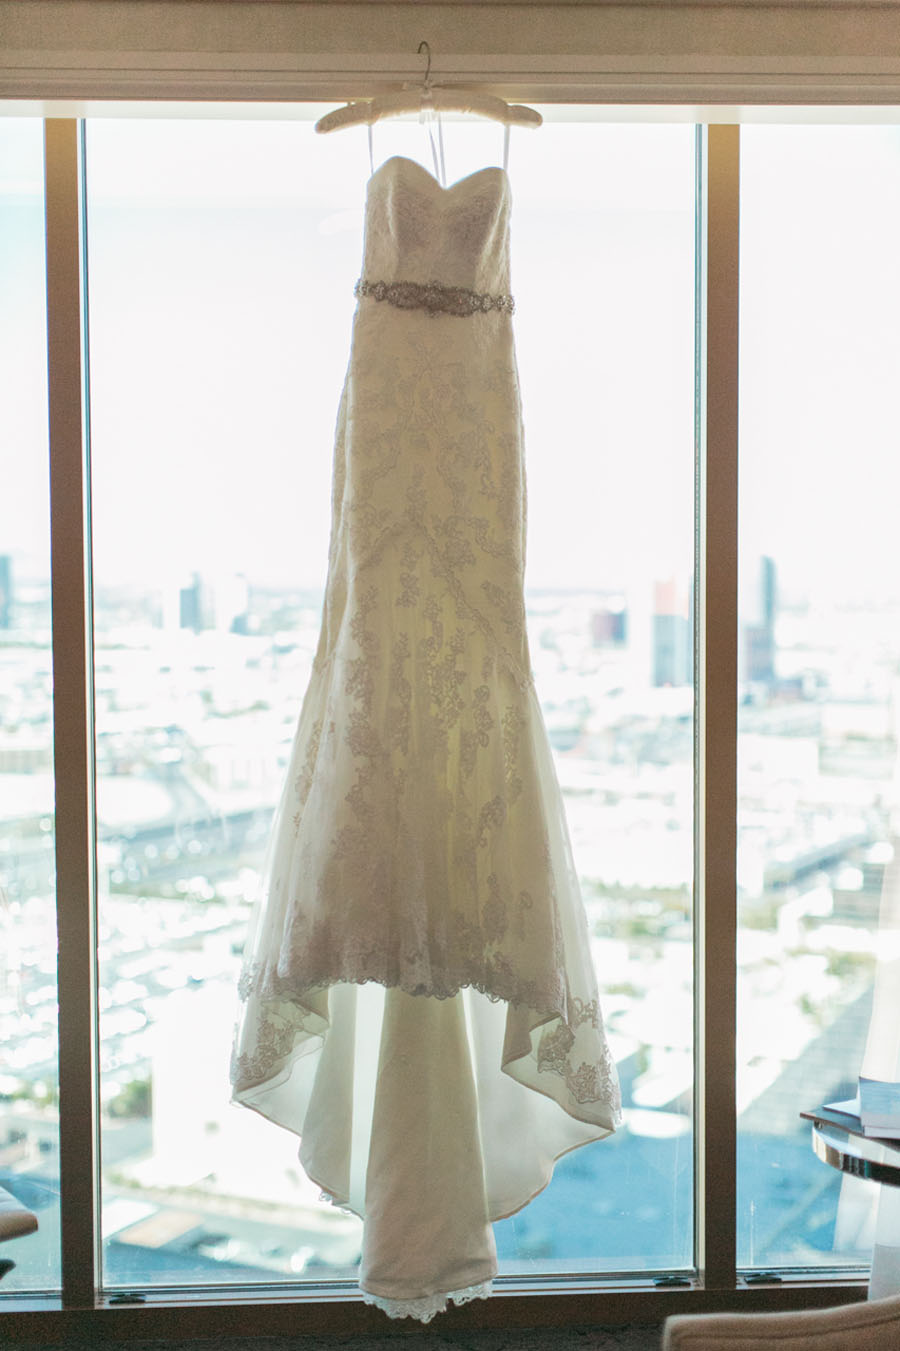 Lace Strapless Wedding Gown by La Sposa.    Las Vegas Wedding Planner  Andrea Eppolito .  Wedding at  Four Seasons .  Photography by  Meg Ruth .  Floral and Decor by  Naakiti Floral .